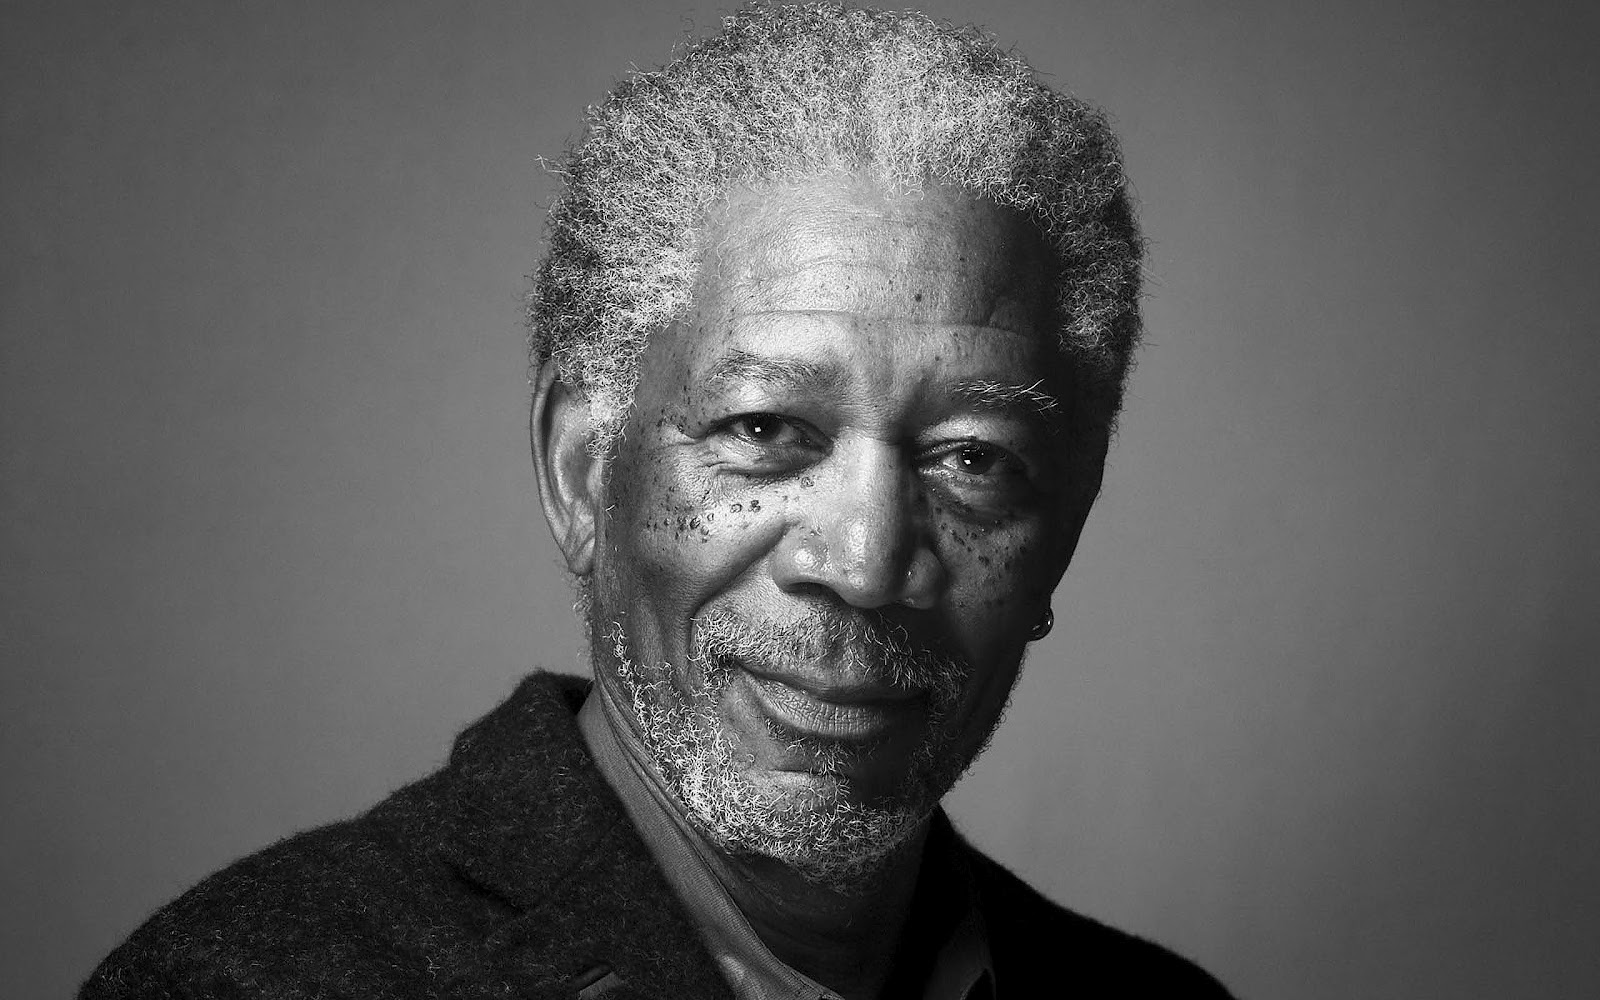 morgan freeman фильмыmorgan freeman dead, morgan freeman films, morgan freeman filmleri, morgan freeman movies, morgan freeman умер, morgan freeman wiki, morgan freeman filmi, morgan freeman 2017, morgan freeman height, morgan freeman imdb, morgan freeman age, morgan freeman through the wormhole, morgan freeman films 2016, morgan freeman national geographic, morgan freeman net worth, morgan freeman quotes, morgan freeman haqqinda, morgan freeman фильмы, morgan freeman the story of god, morgan freeman show